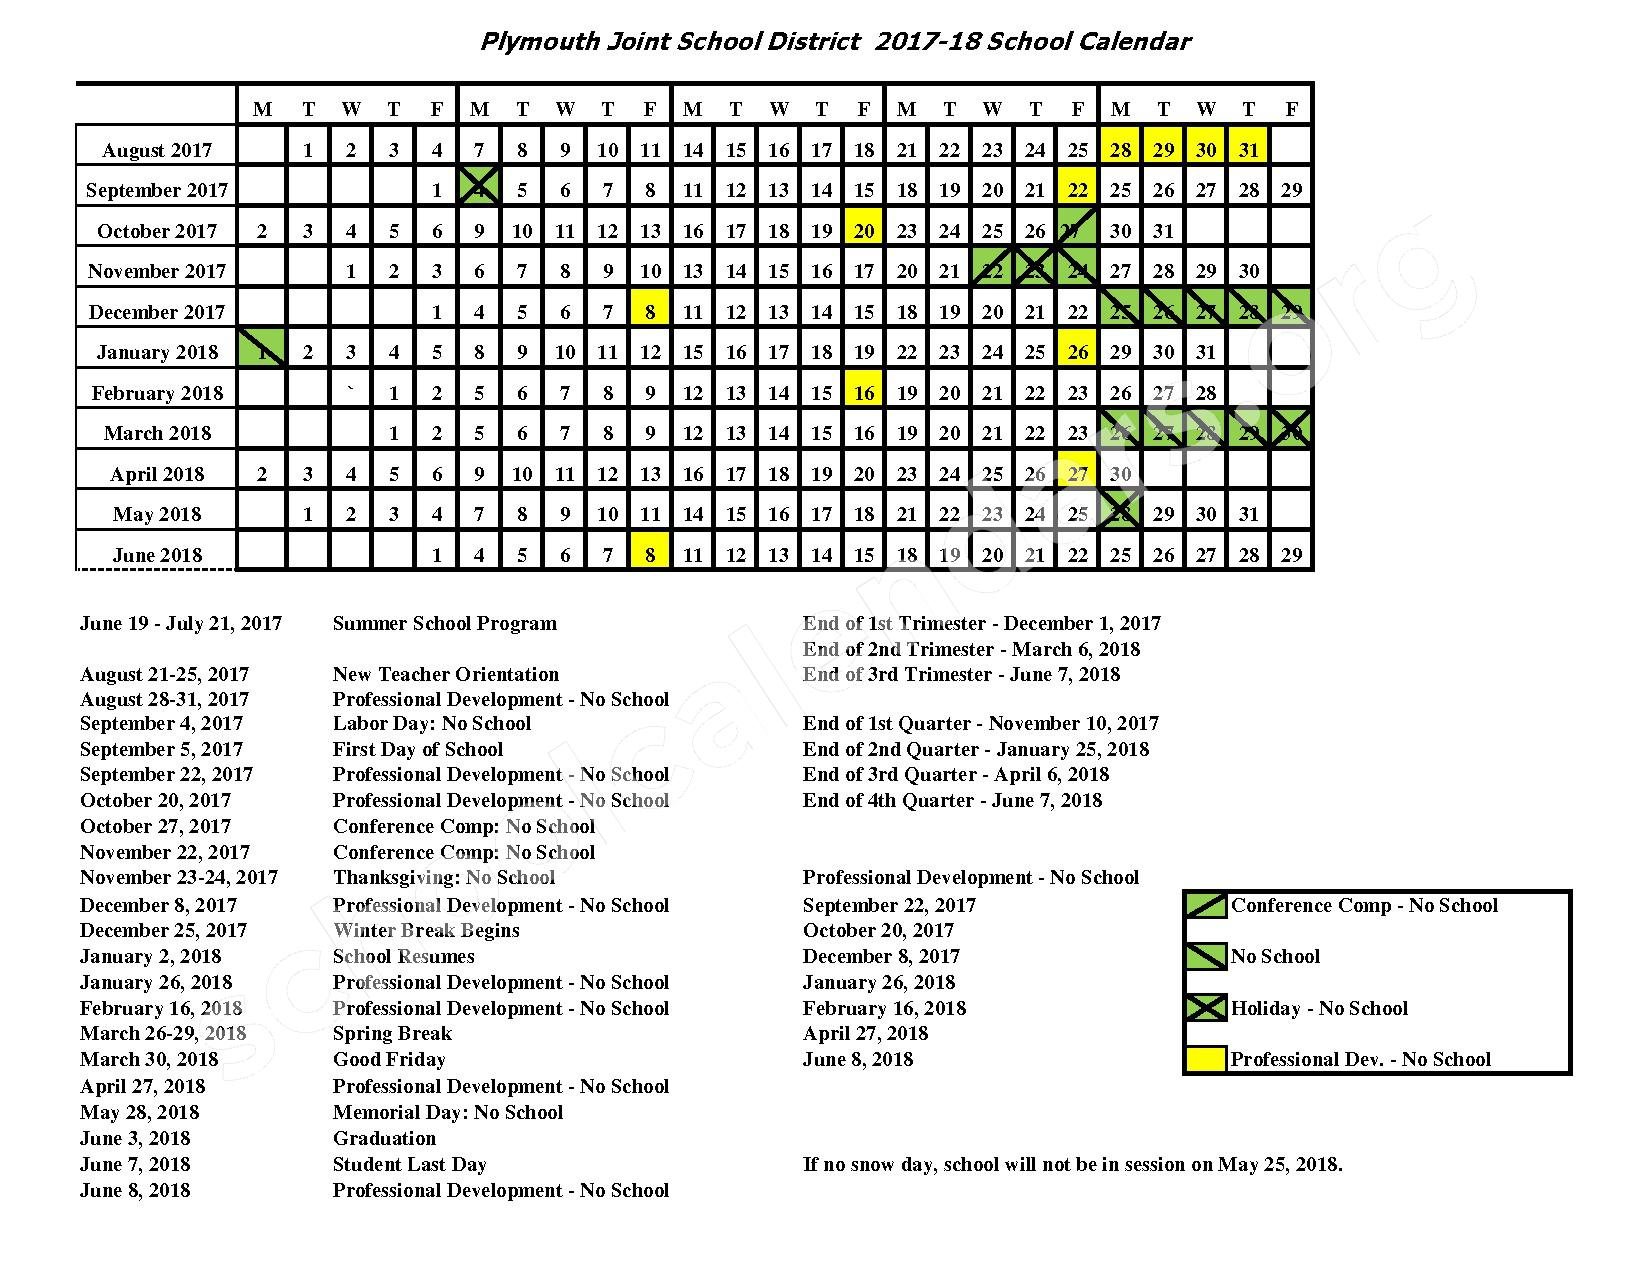 2017 - 2018 School Calendar – Plymouth Joint School District – page 1